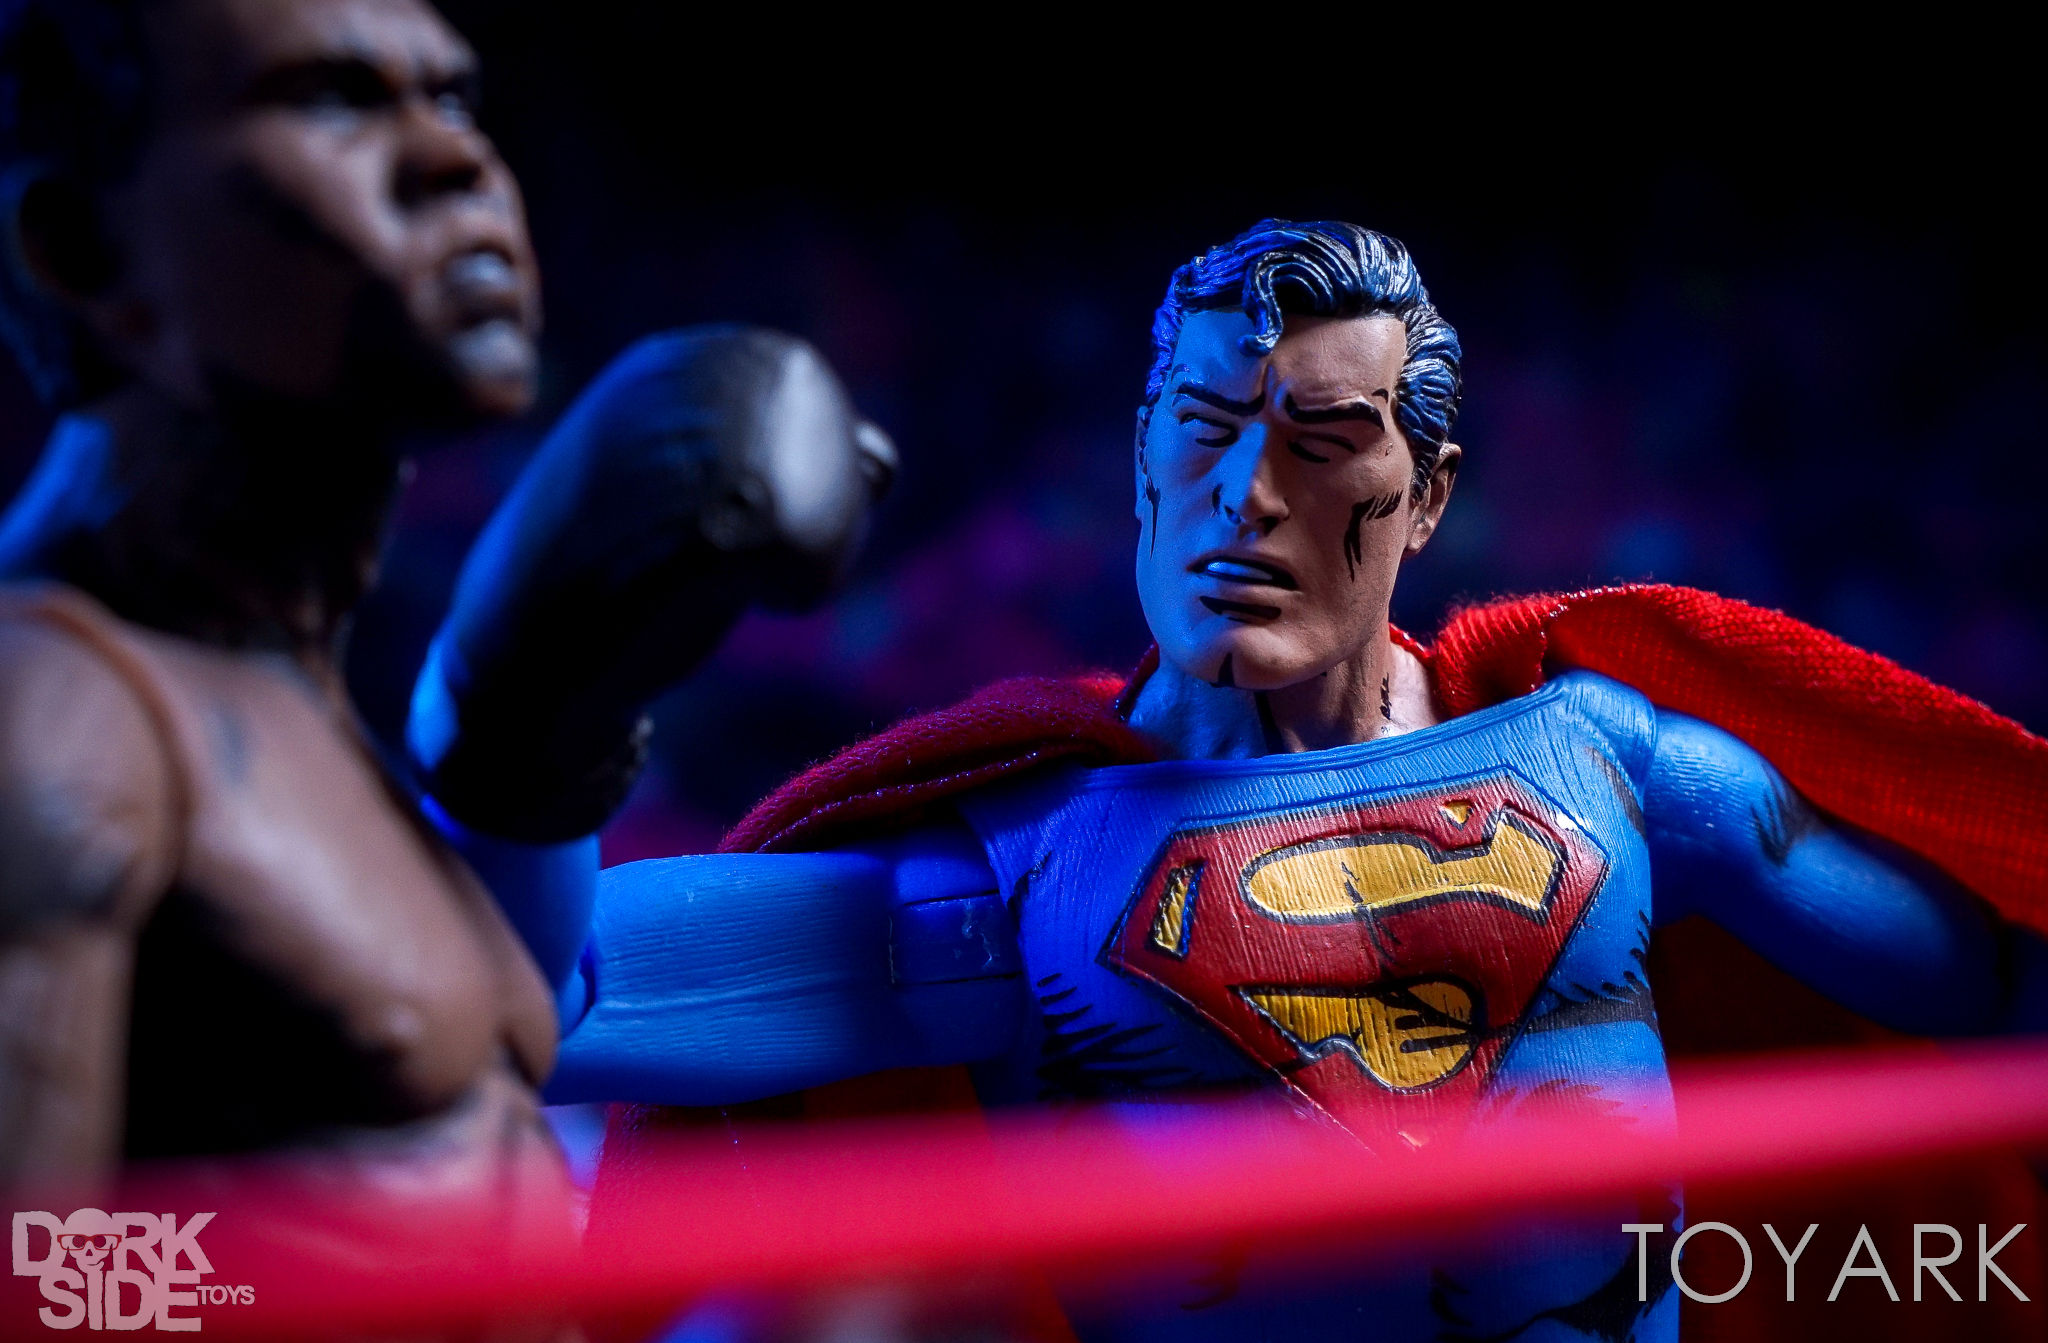 http://news.toyark.com/wp-content/uploads/sites/4/2017/02/NECA-Ali-vs-Superman-Set-023.jpg